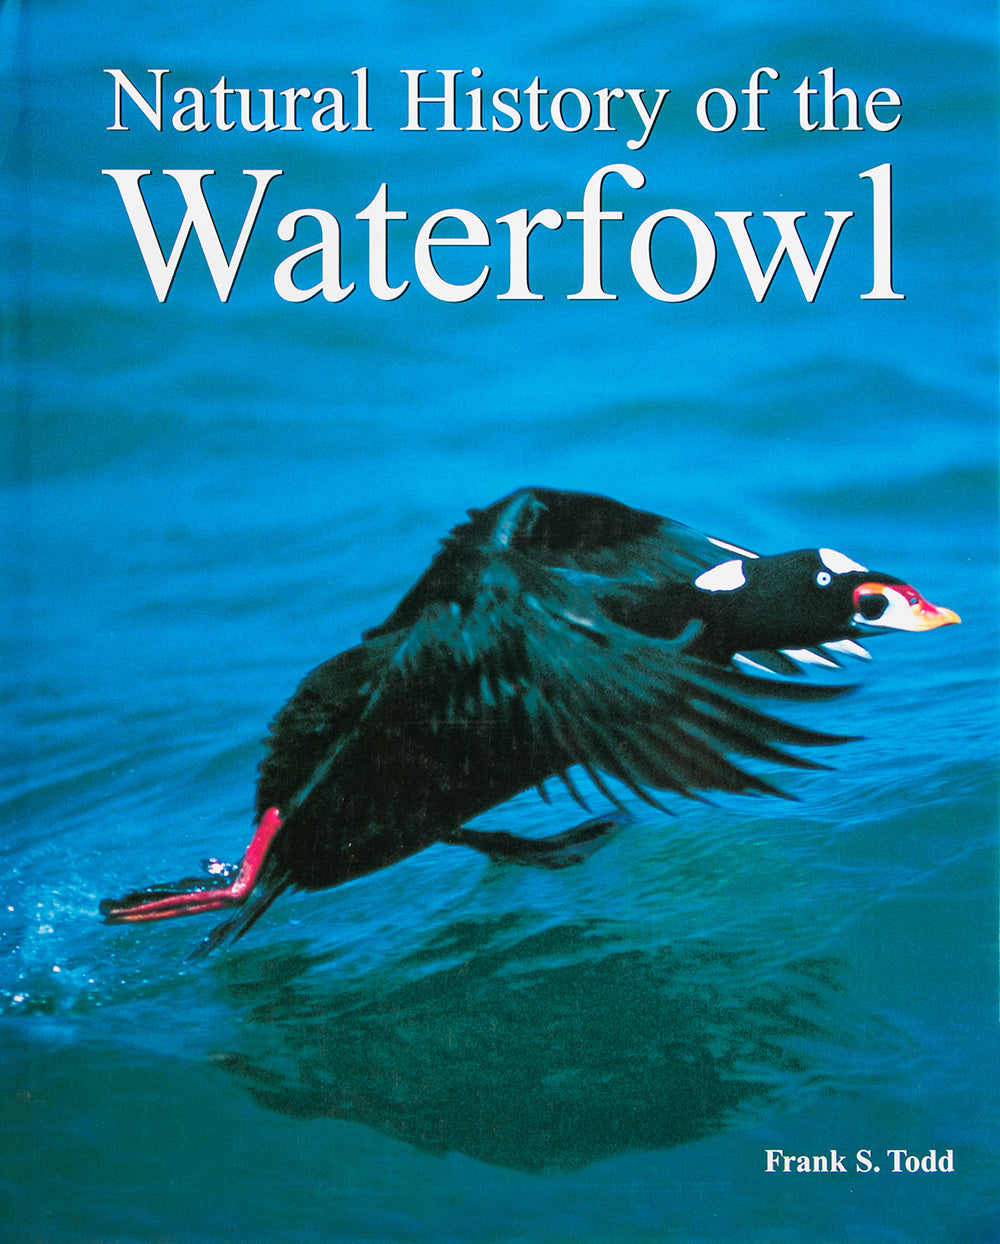 Natural History of the Waterfowl